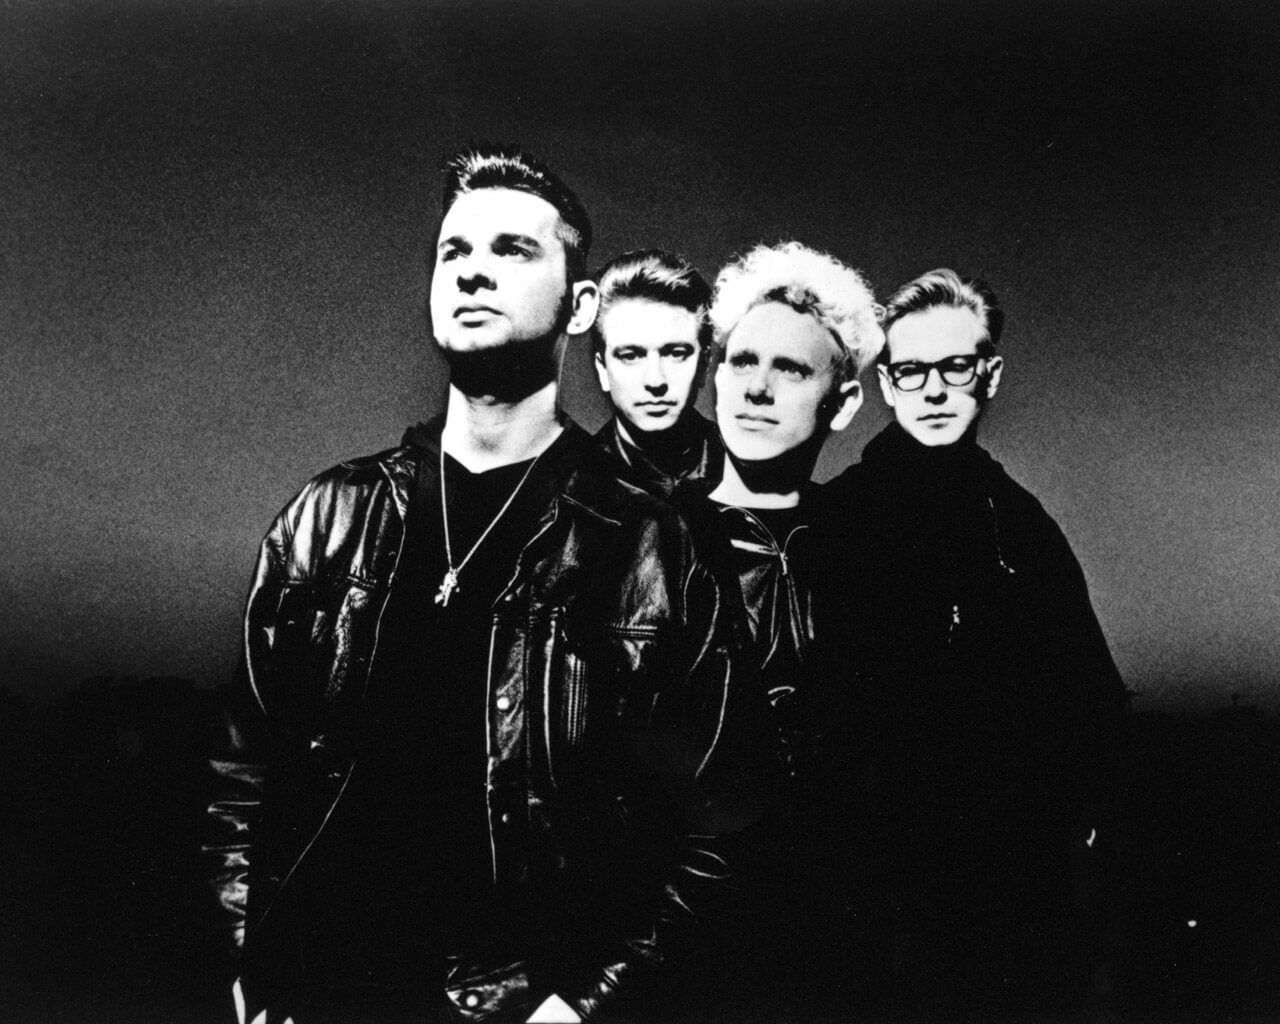 Depeche Mode ... Synth gods, according to Stefan.